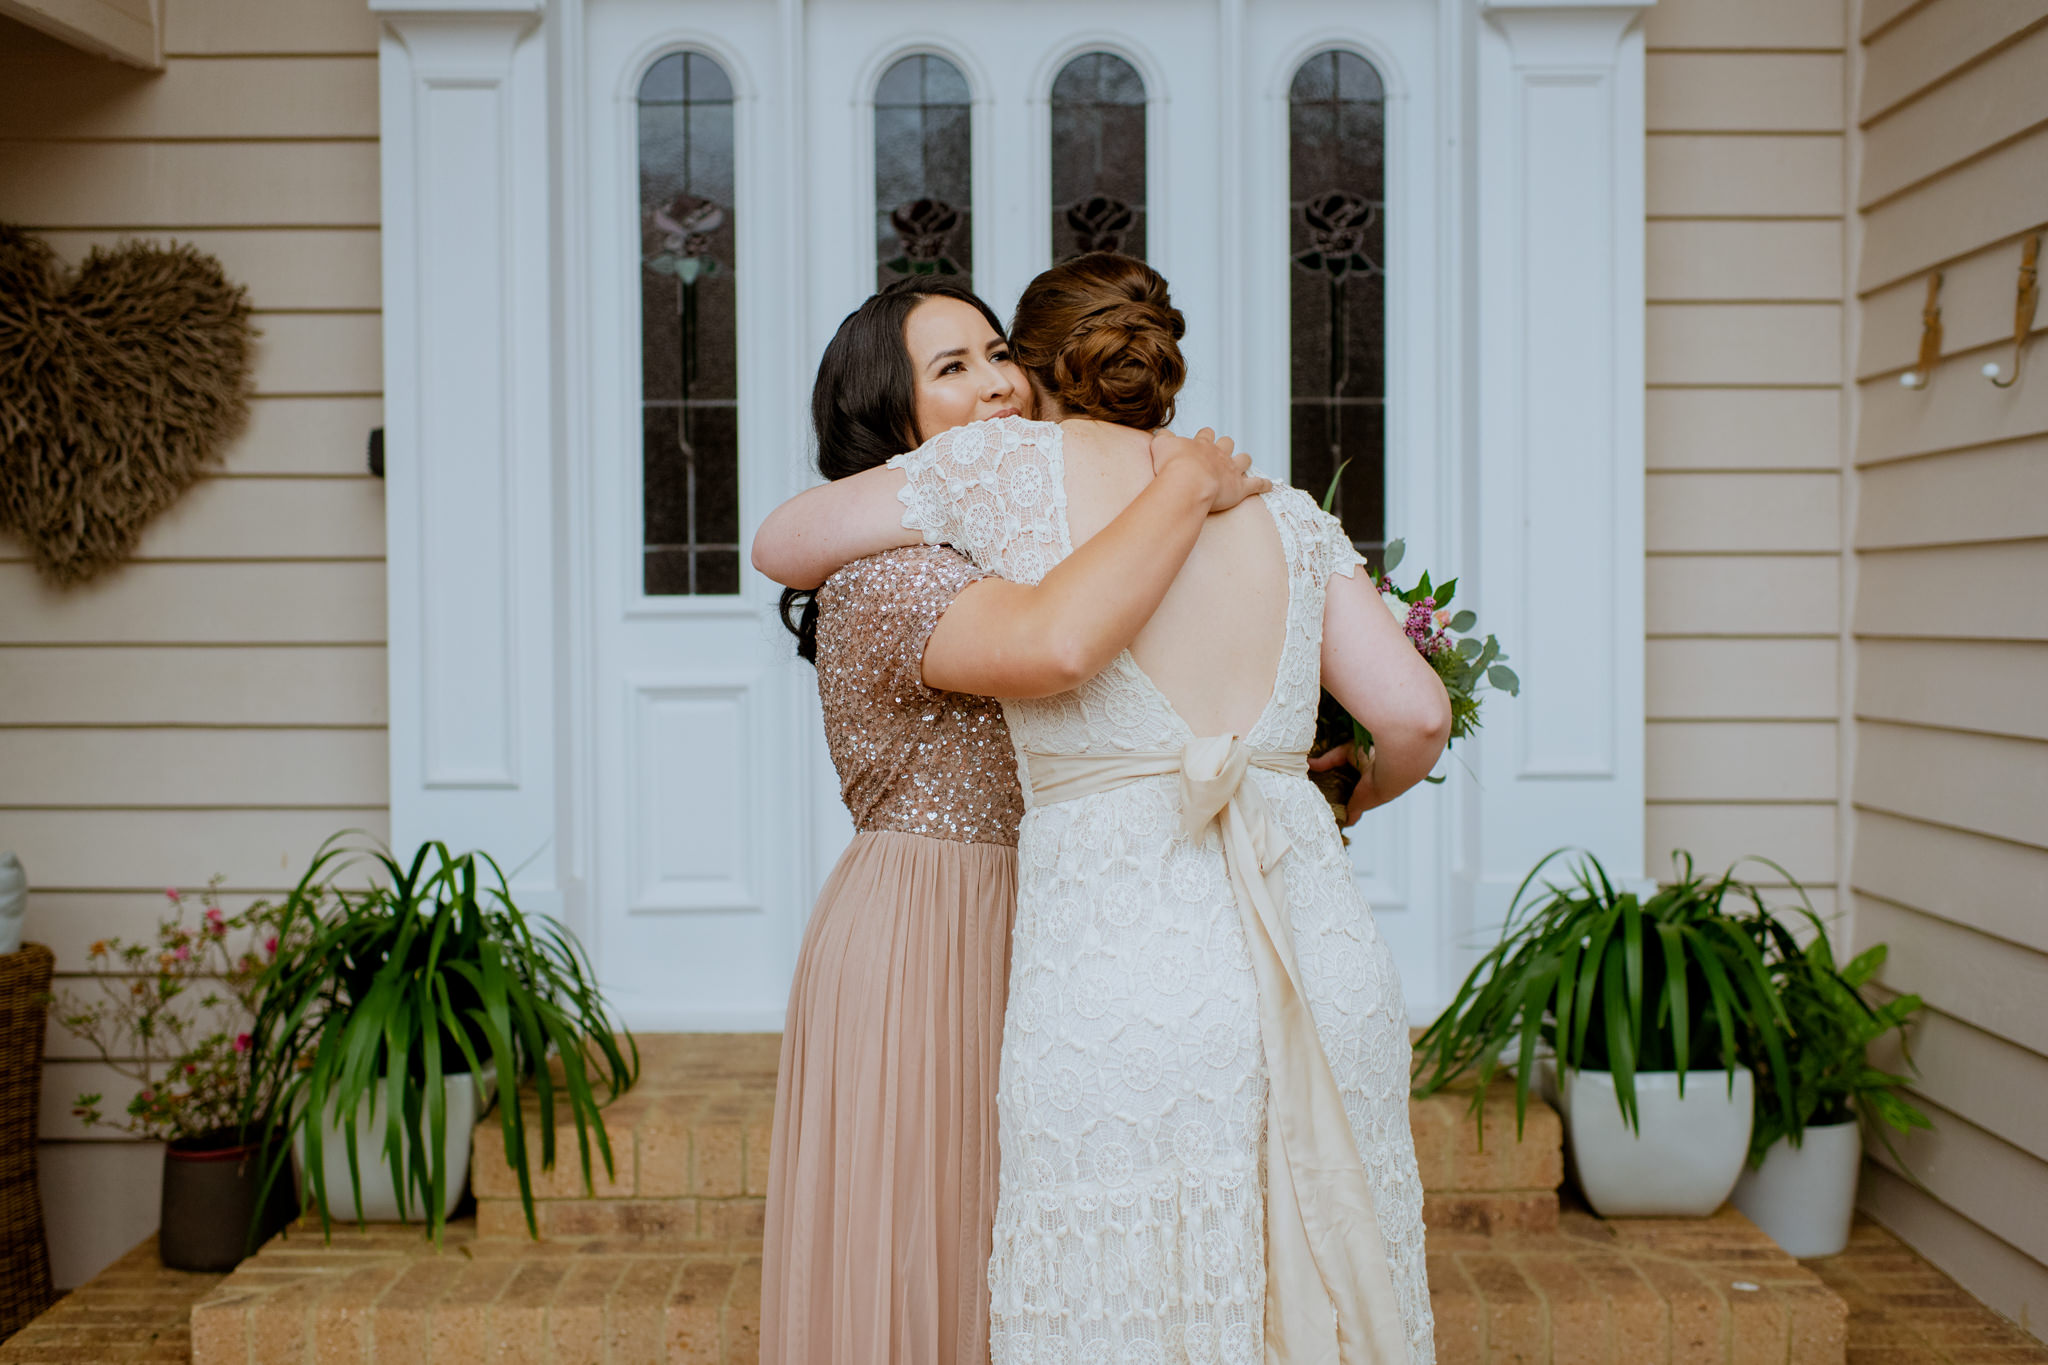 Same sex couple embrace in front of white doors